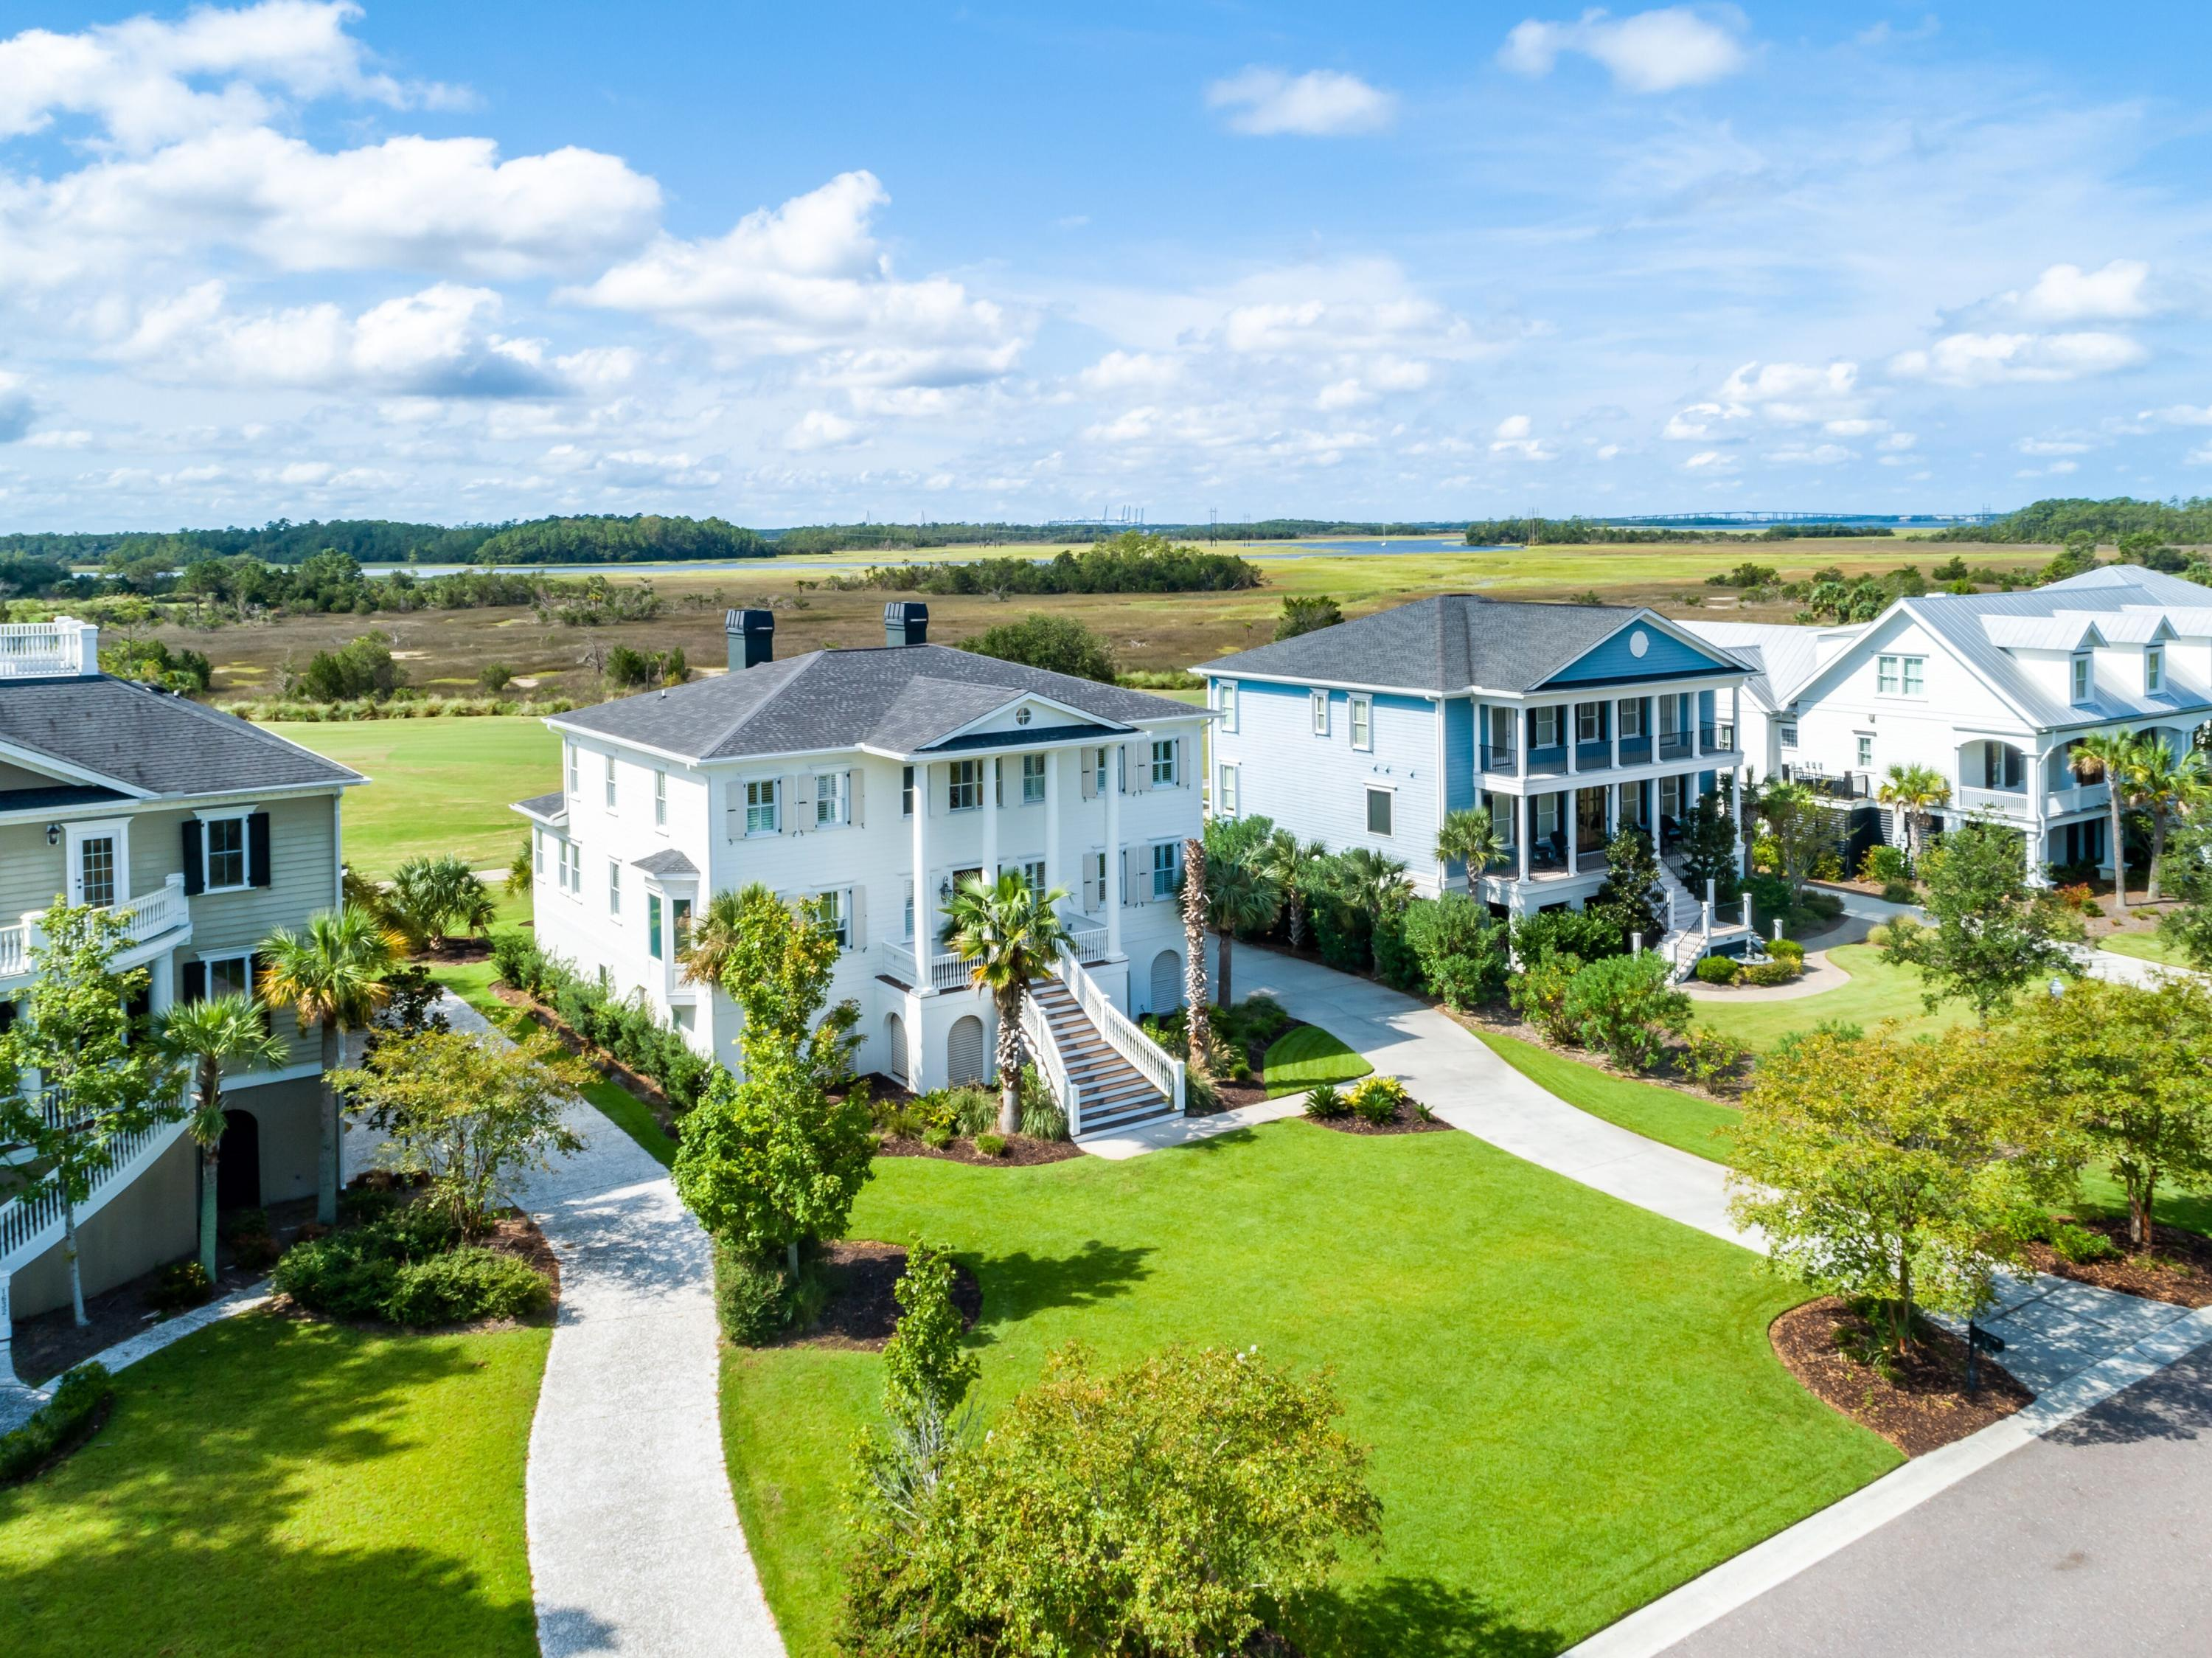 Rivertowne Country Club Homes For Sale - 1636 Rivertowne Country Club, Mount Pleasant, SC - 35